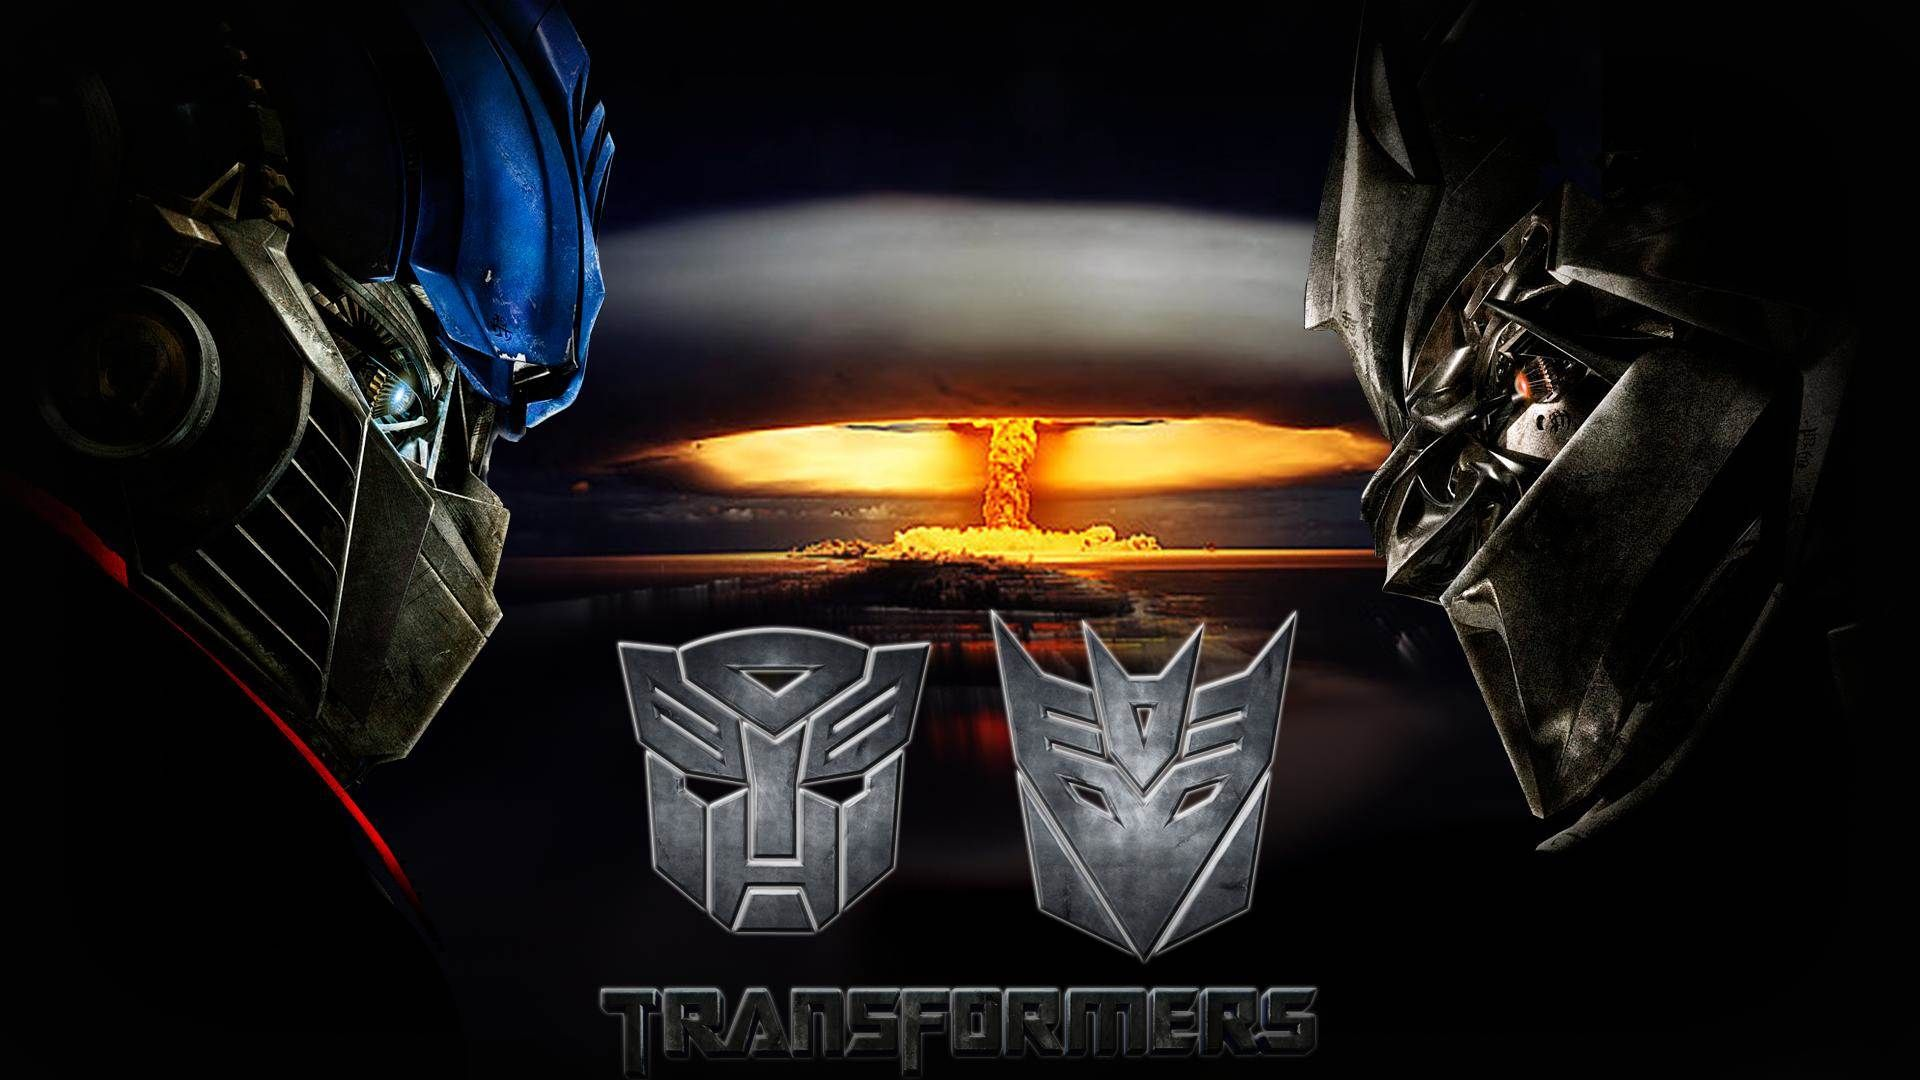 transformers movie wallpapers hd quality download 1920 1080